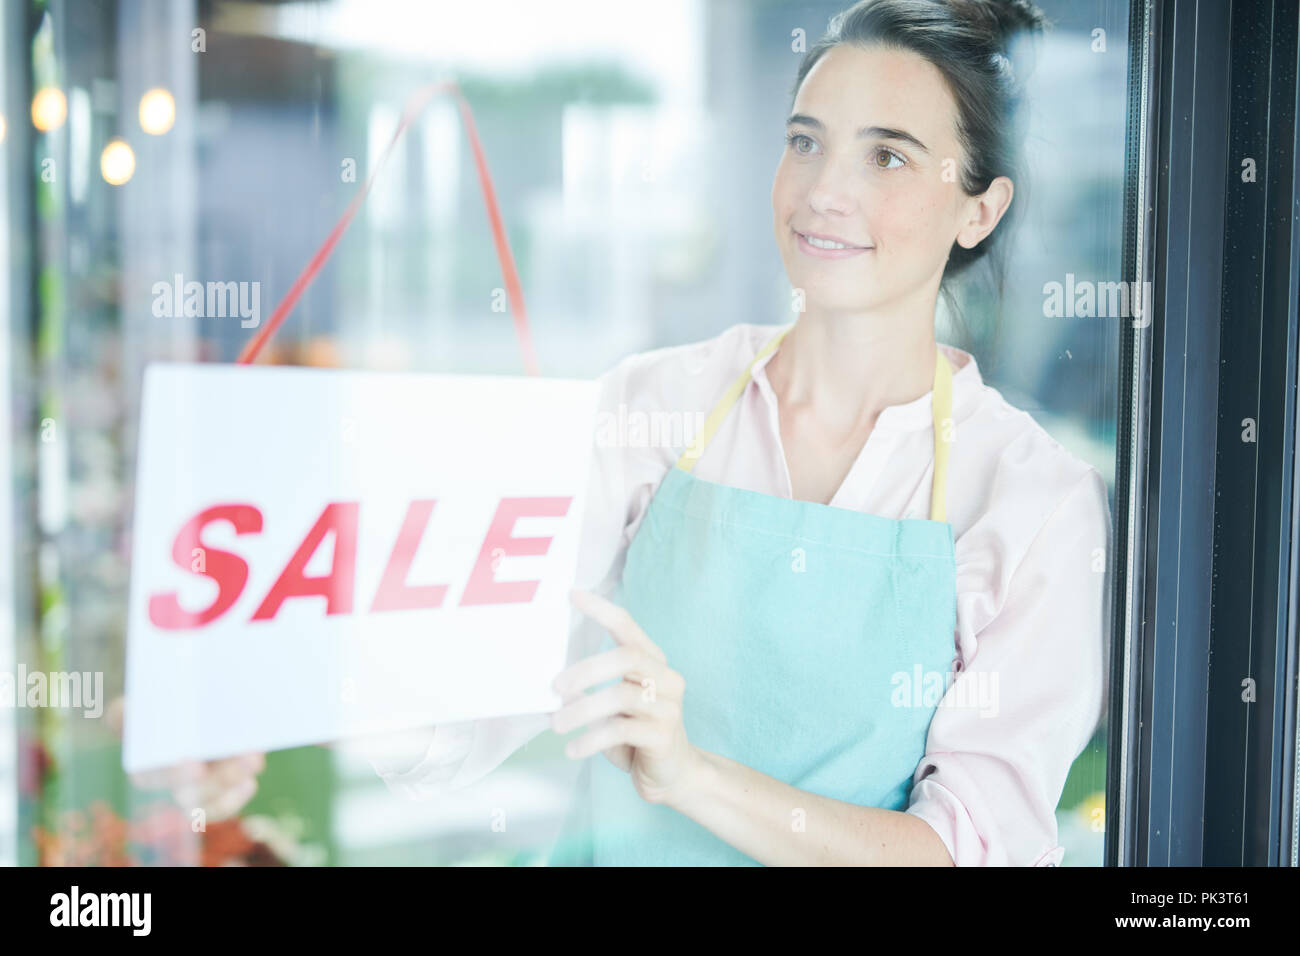 Shopkeeper Hanging SALE Sign - Stock Image